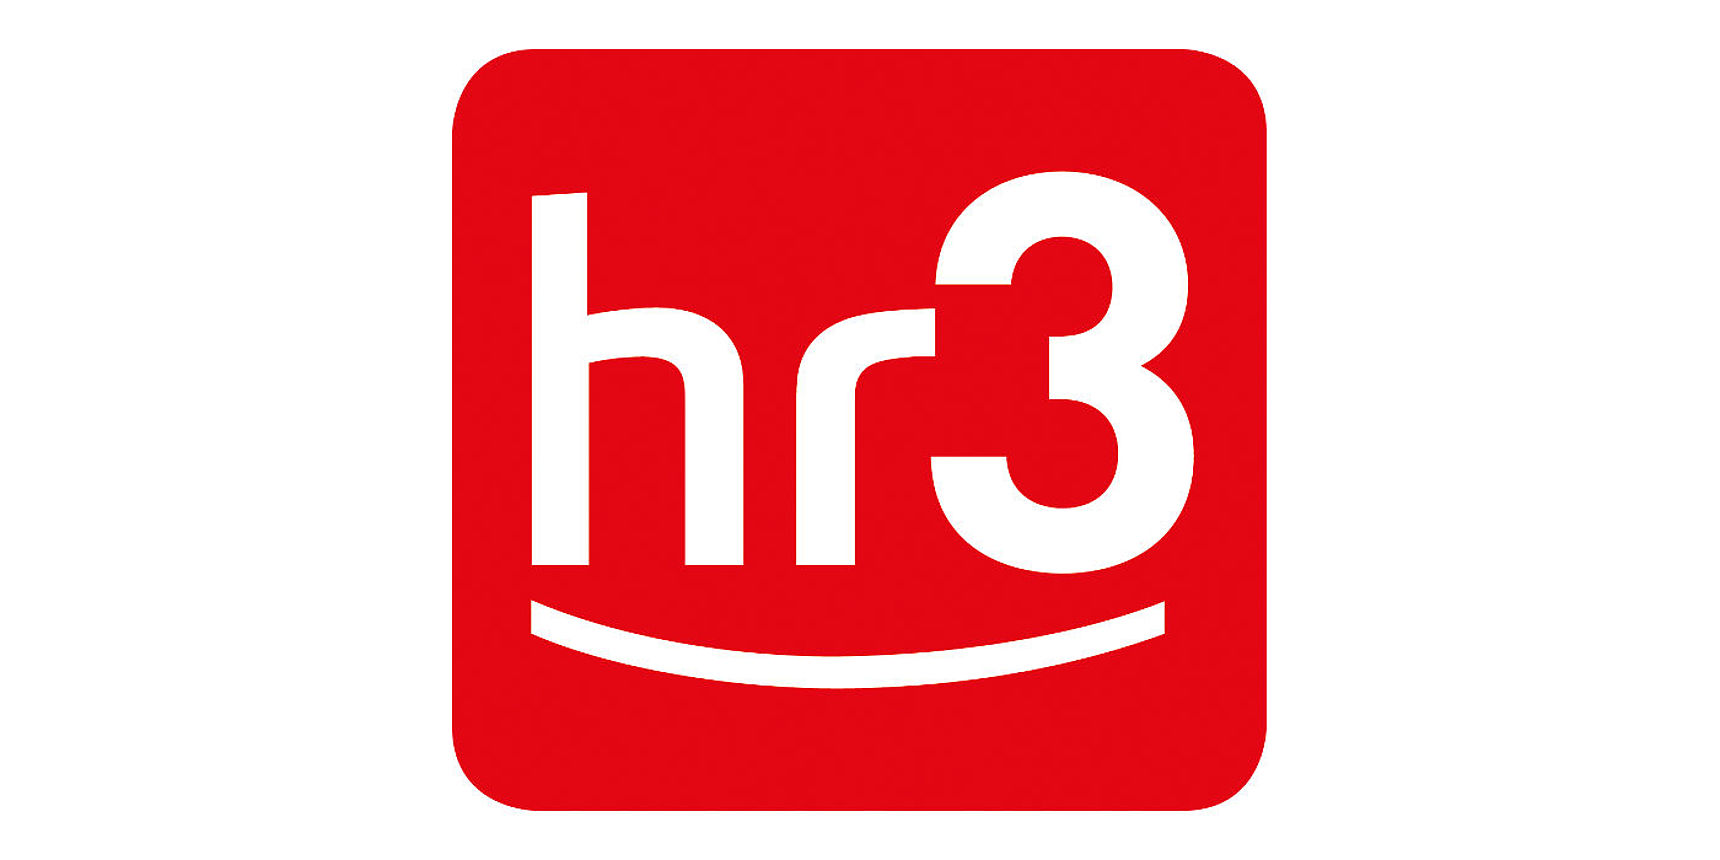 [Translate to English:] Logo hr3